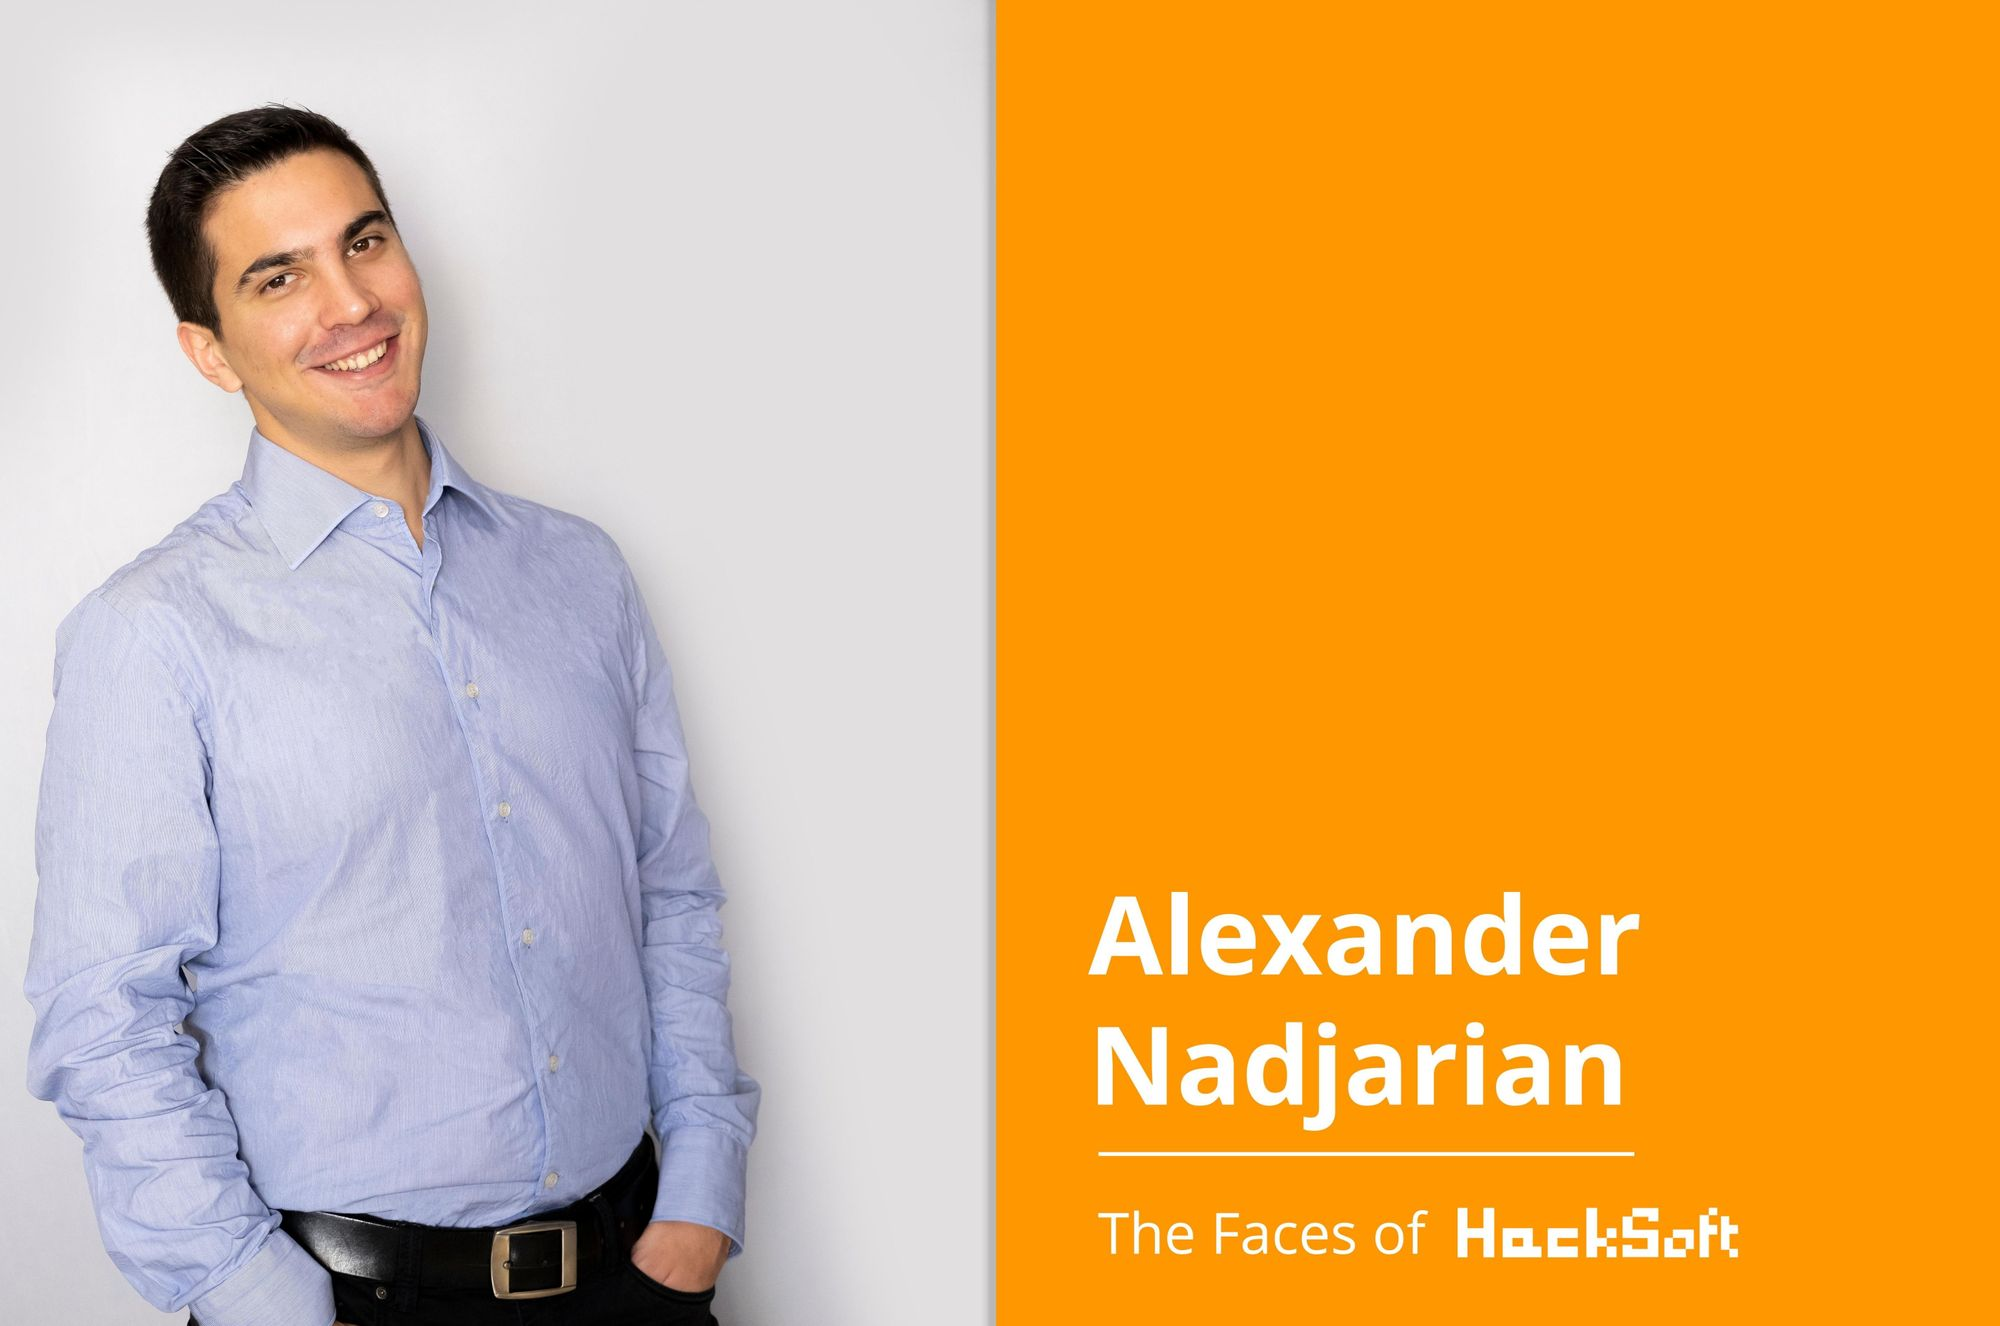 Behind any successful company, stands a motivated team. This week we would like to introduce you to Alexander Nadjarian.